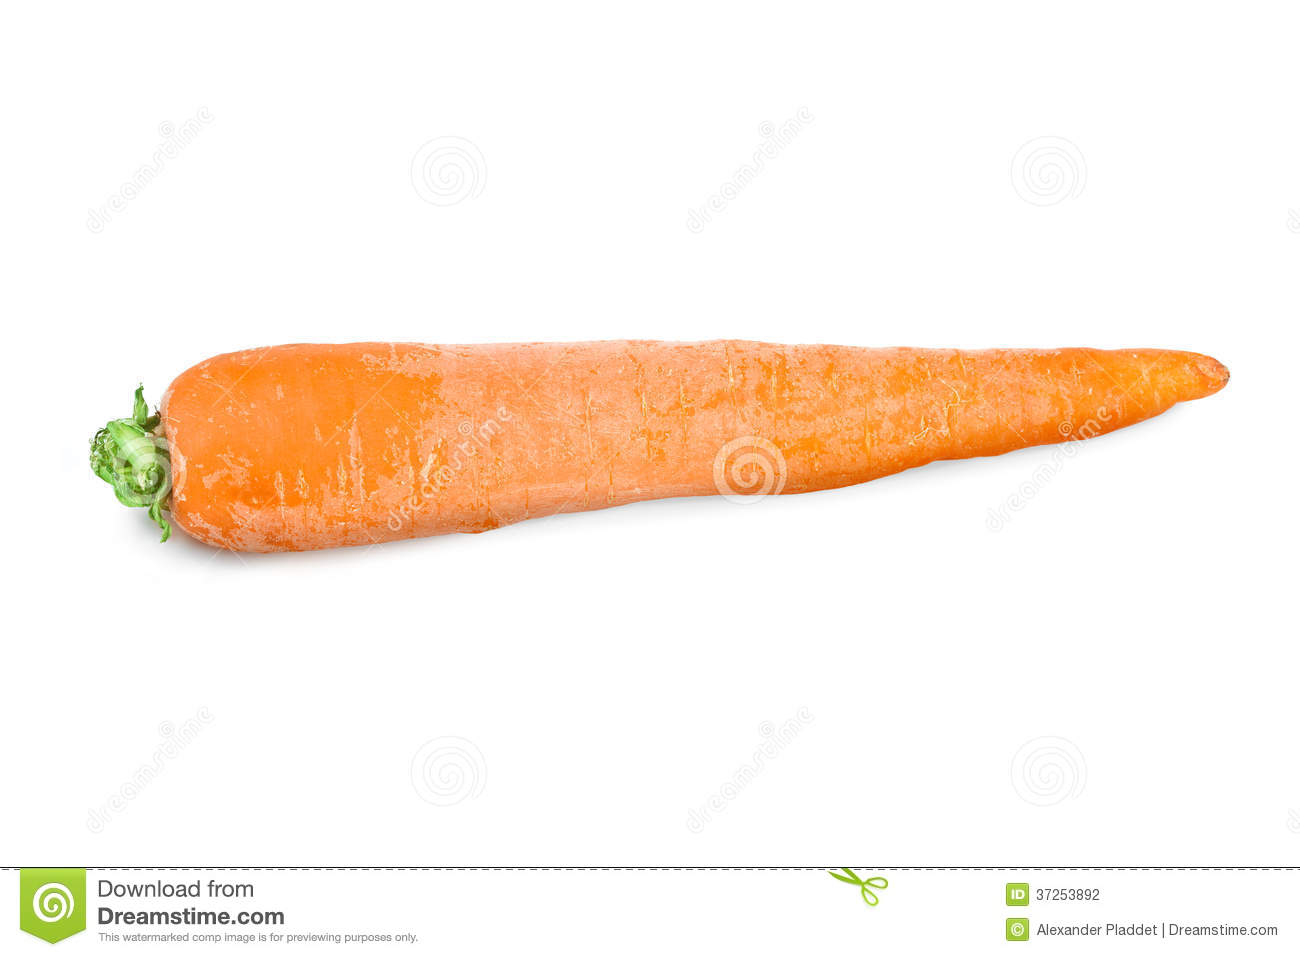 dangle a carrot dating website Dating app carrot dating tells us that women are like dogs you read that right, and we wish we were joking the man behind the dating app is also one of the founders of the website.